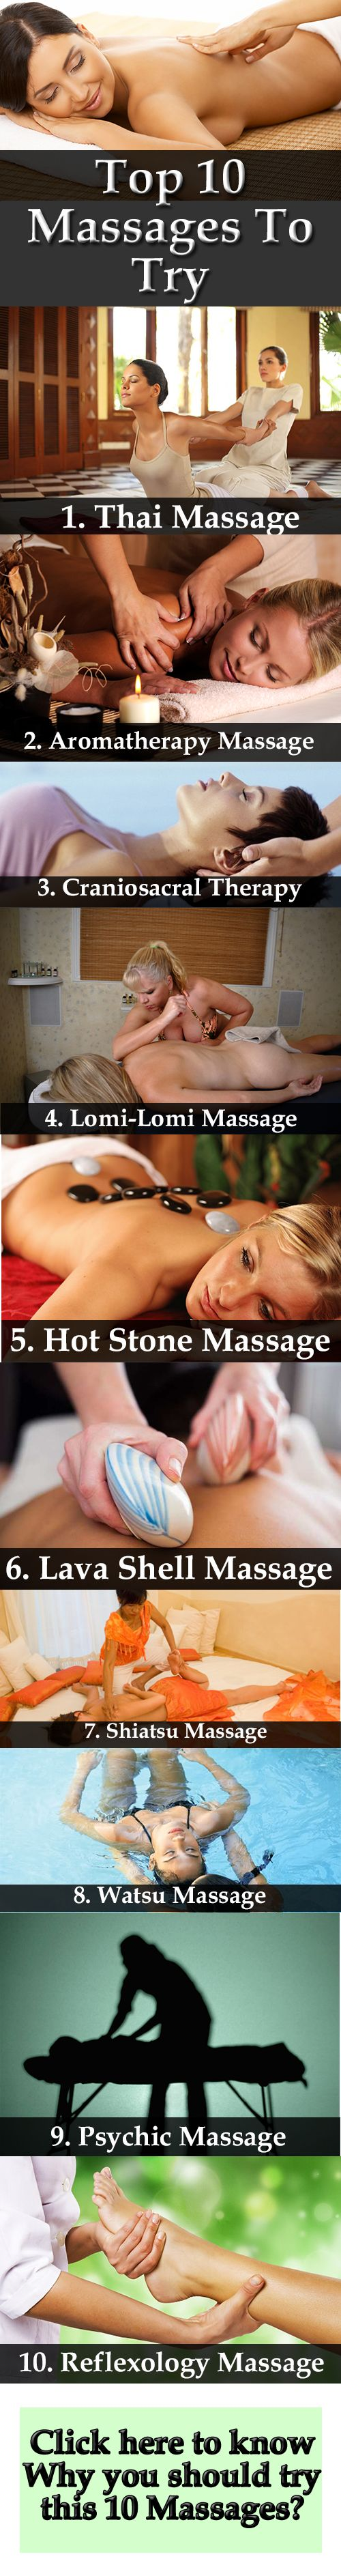 Top 10 Massages To Try: 1. Thai Massage 2. Aromatherapy Massage 3. Craniosacral Therapy 4. Lomi-Lomi Massage 5. Hot Stone Massage 6. Lava Shell Massage 7. Shiatsu Massage 8. Watsu Massage 9. Psychic Massage 10. Reflexology